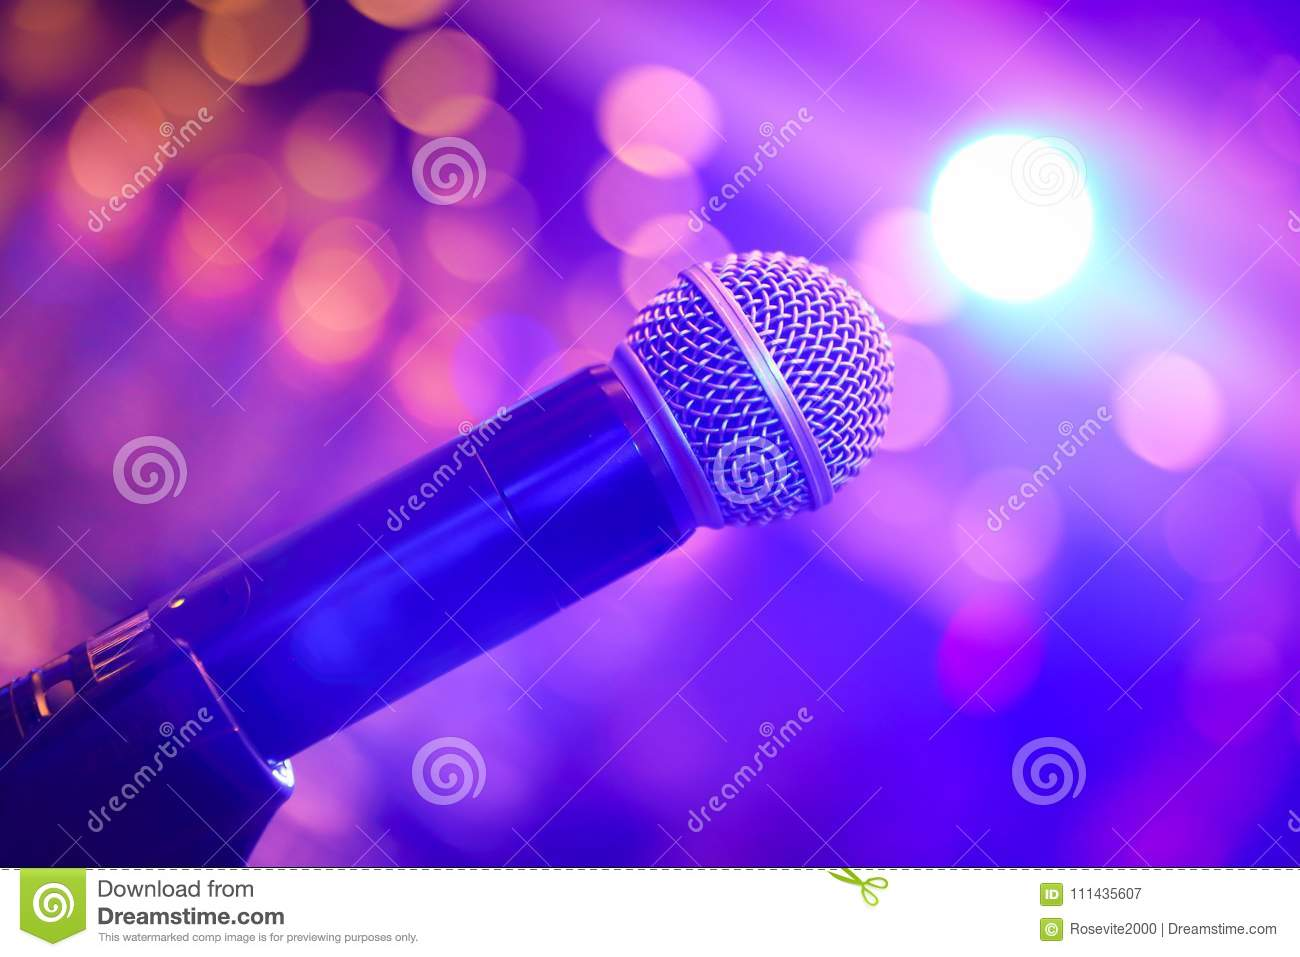 Microphone Surrounded by Light